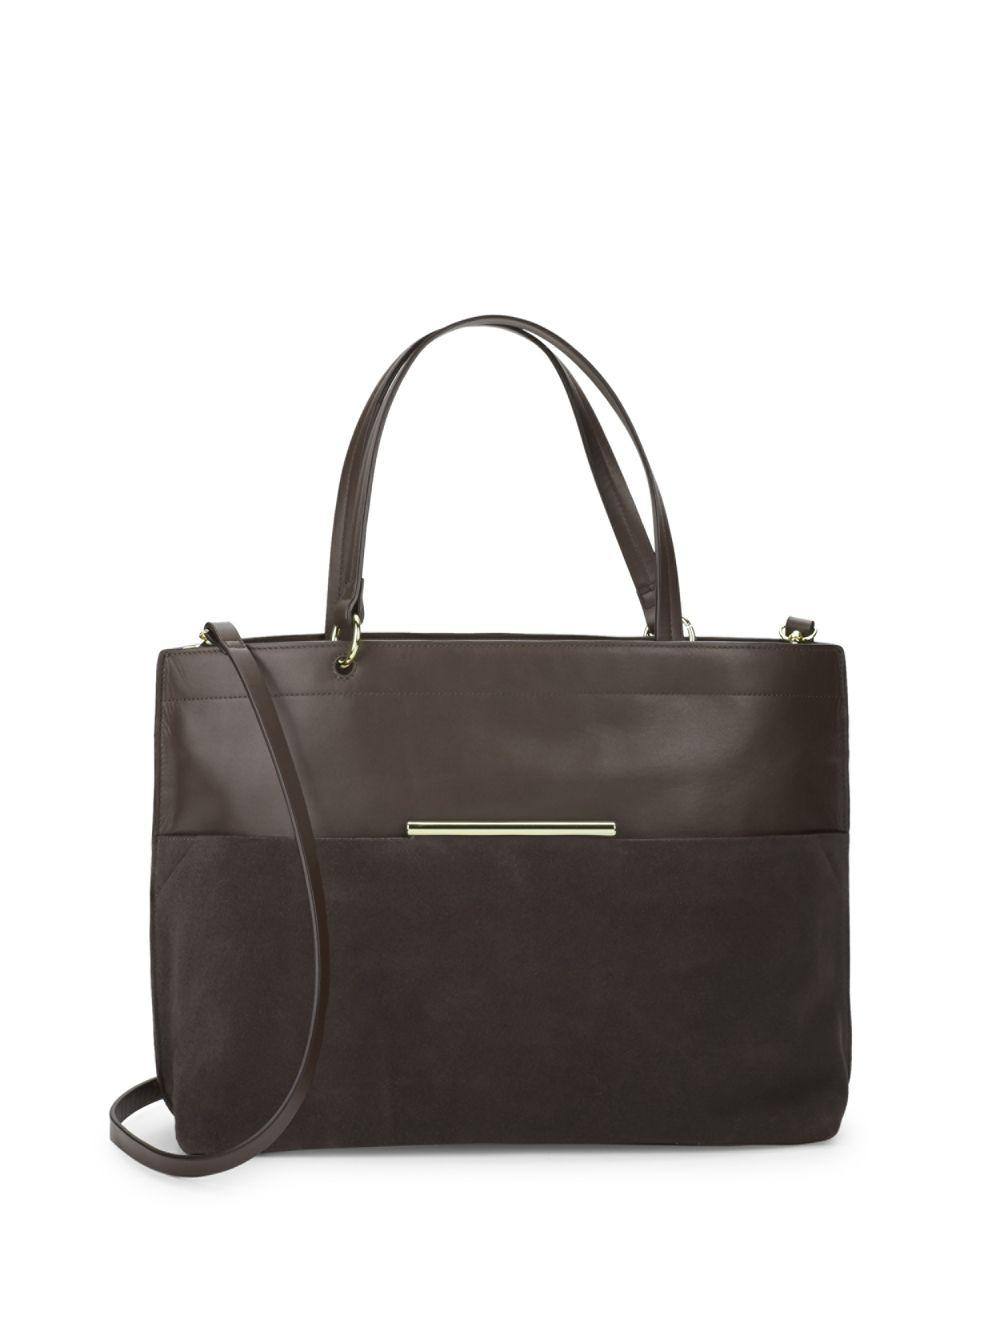 Lyst - Halston Versatile Leather Bag in Brown 7837e43caef31